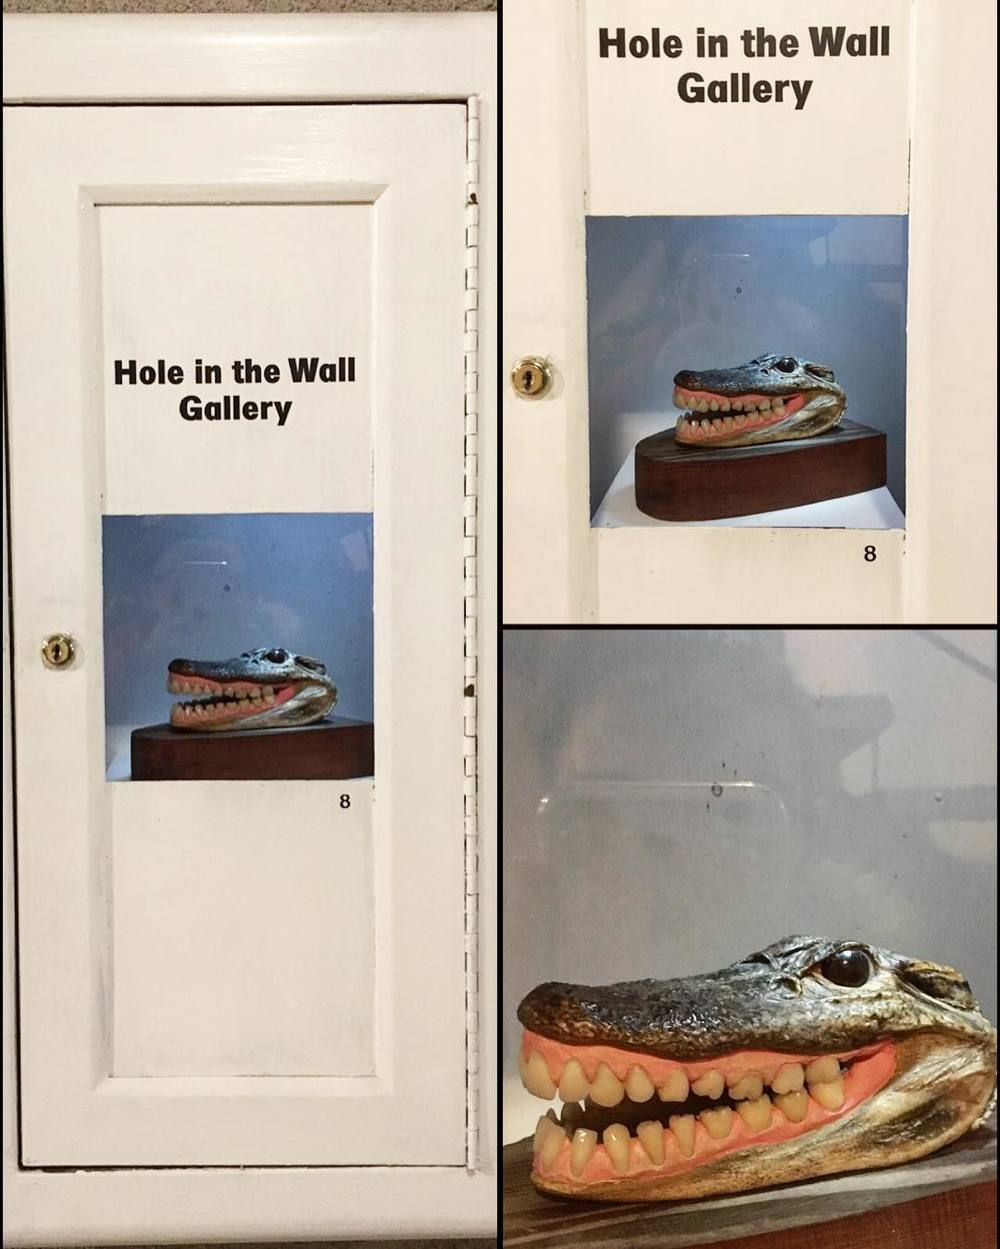 best-gallery--museum-ever-54366---croc-crocodile-alligator-gator-dentures-holeinthewall-littlesurprises-smile_25138575333_o.jpg